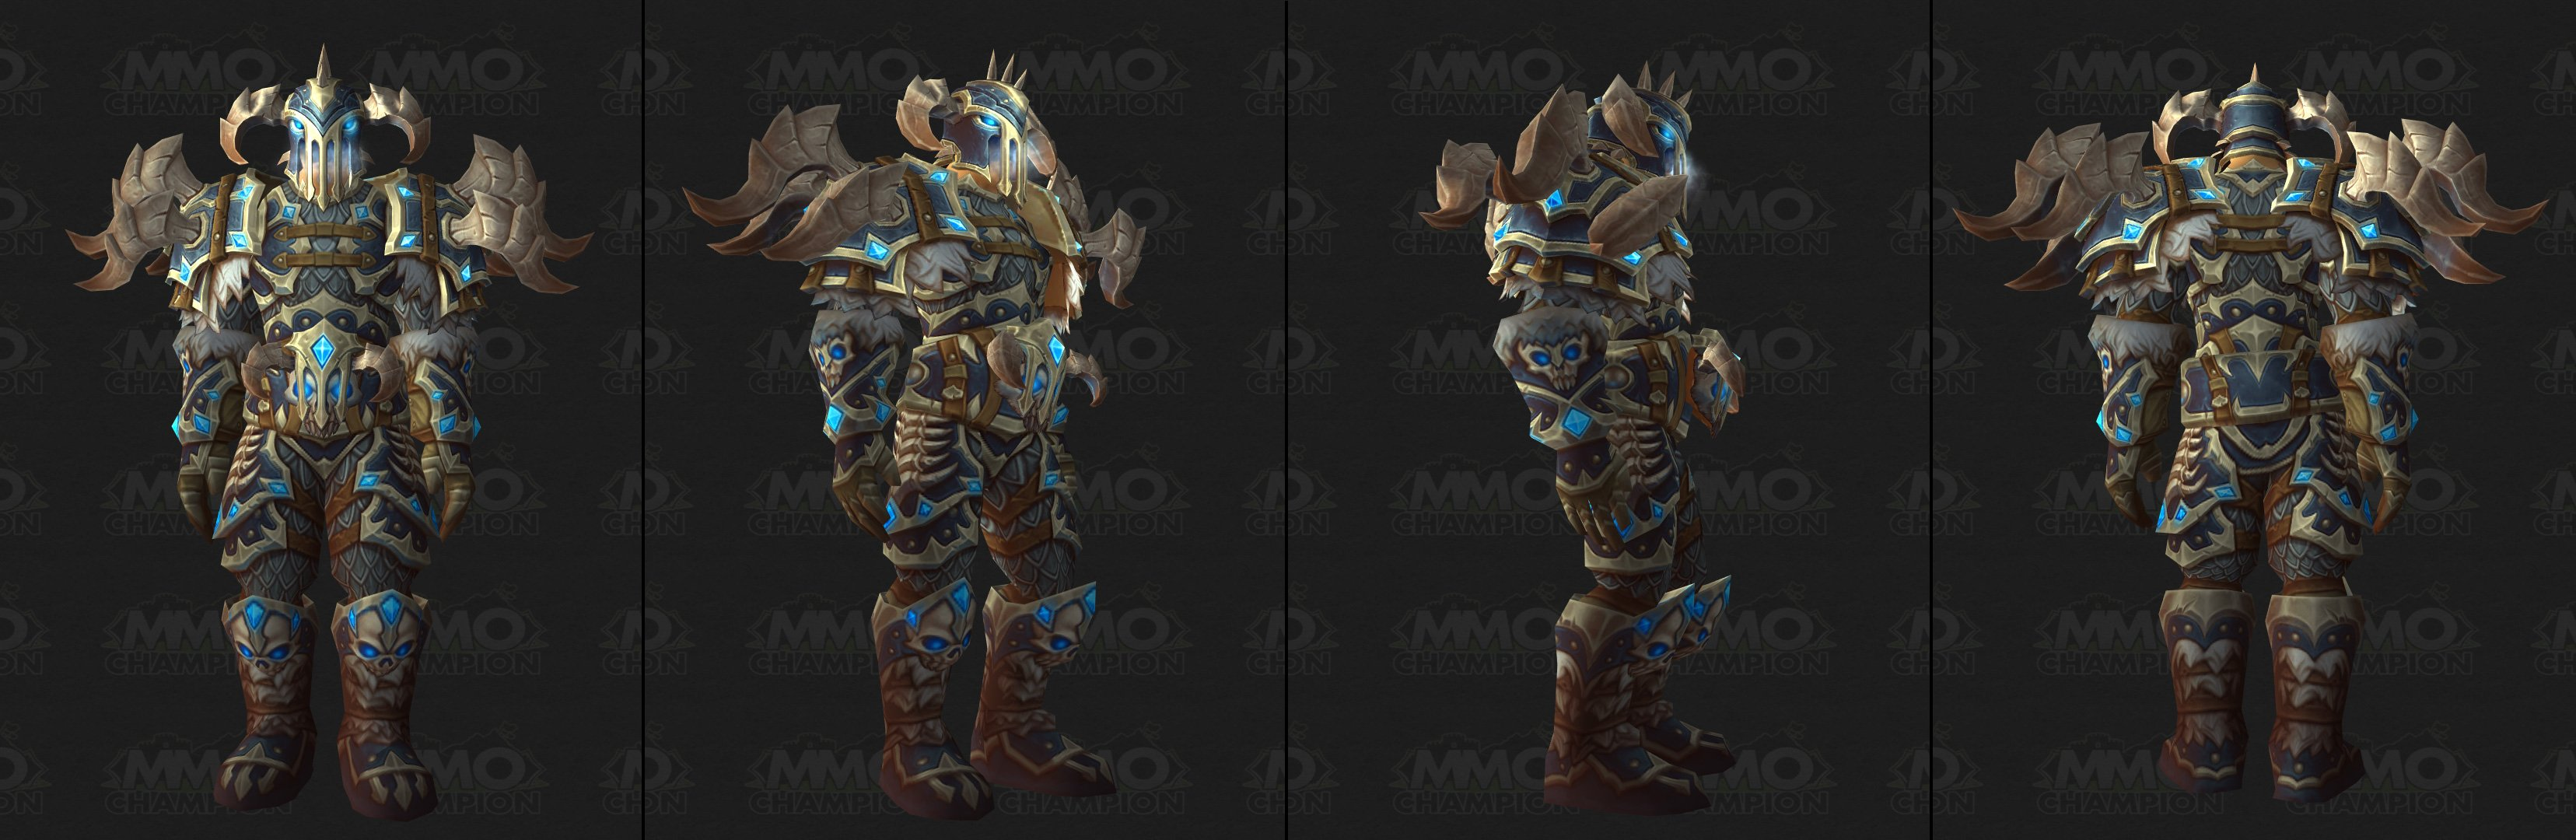 Challenge Mode Armor Sets Knight